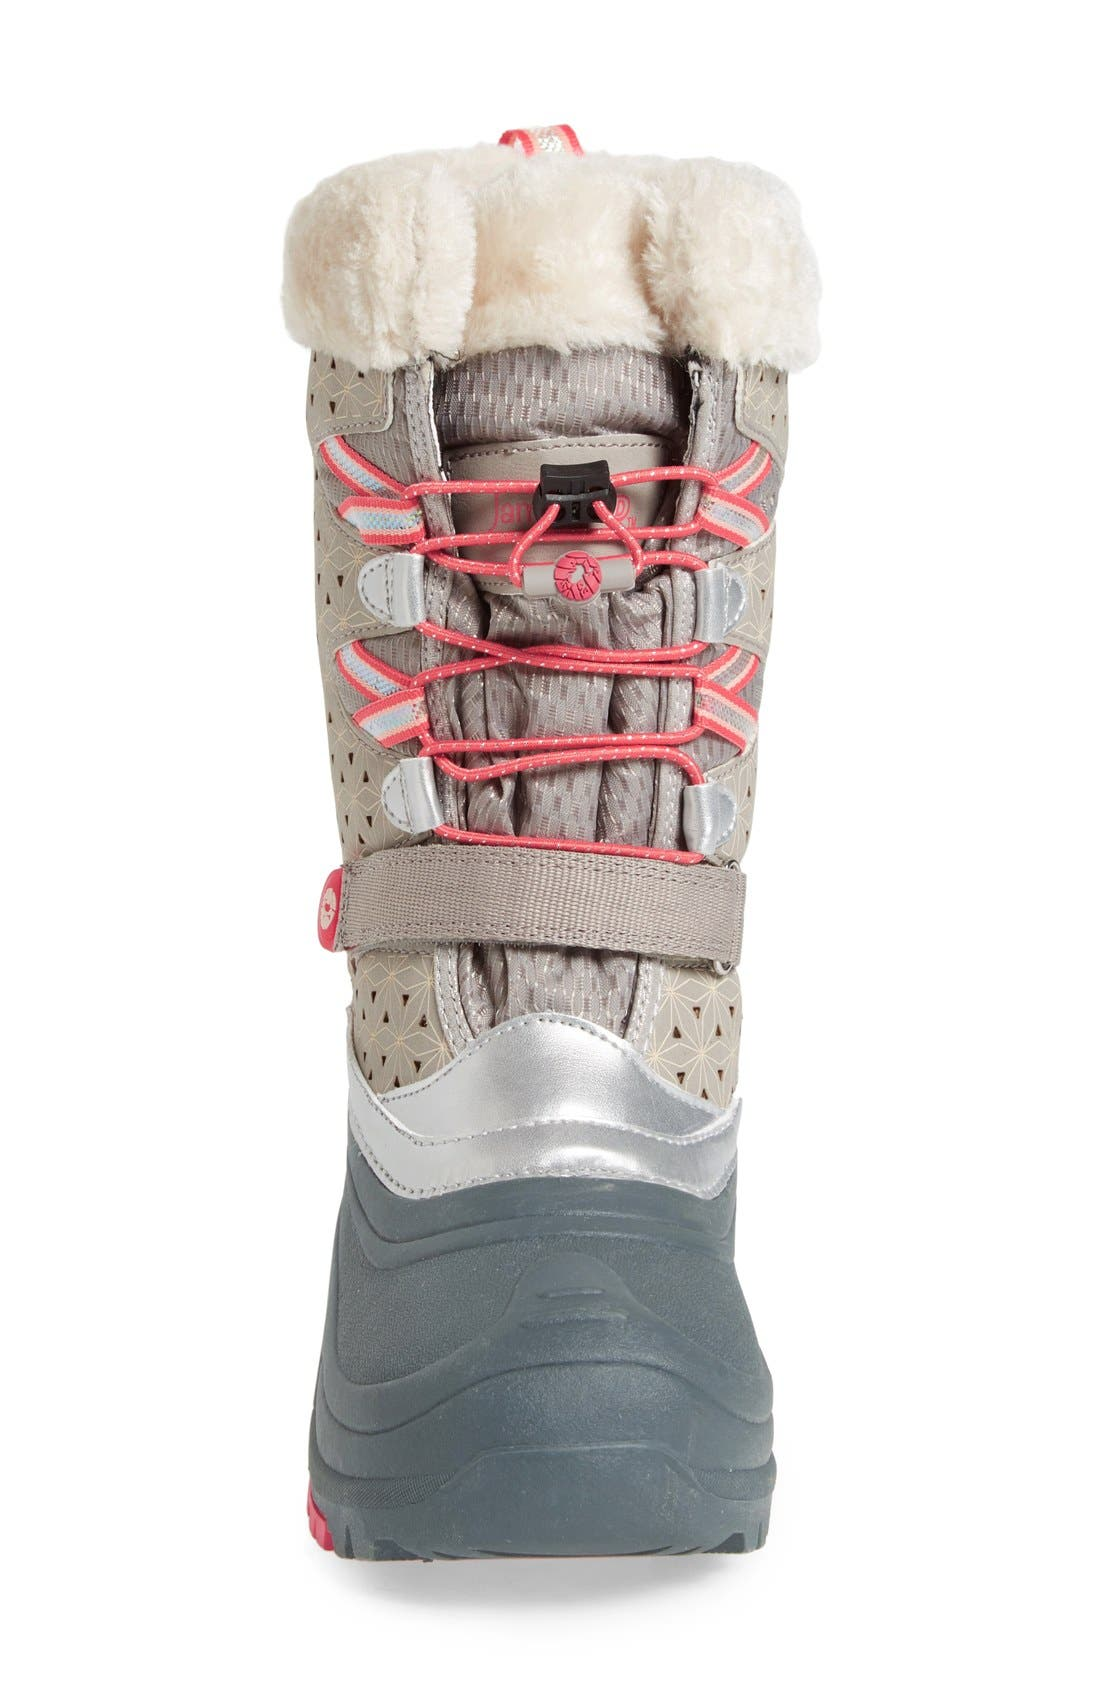 'Venom' Waterproof Insulated Snow Boot,                             Alternate thumbnail 3, color,                             Grey/ Pink